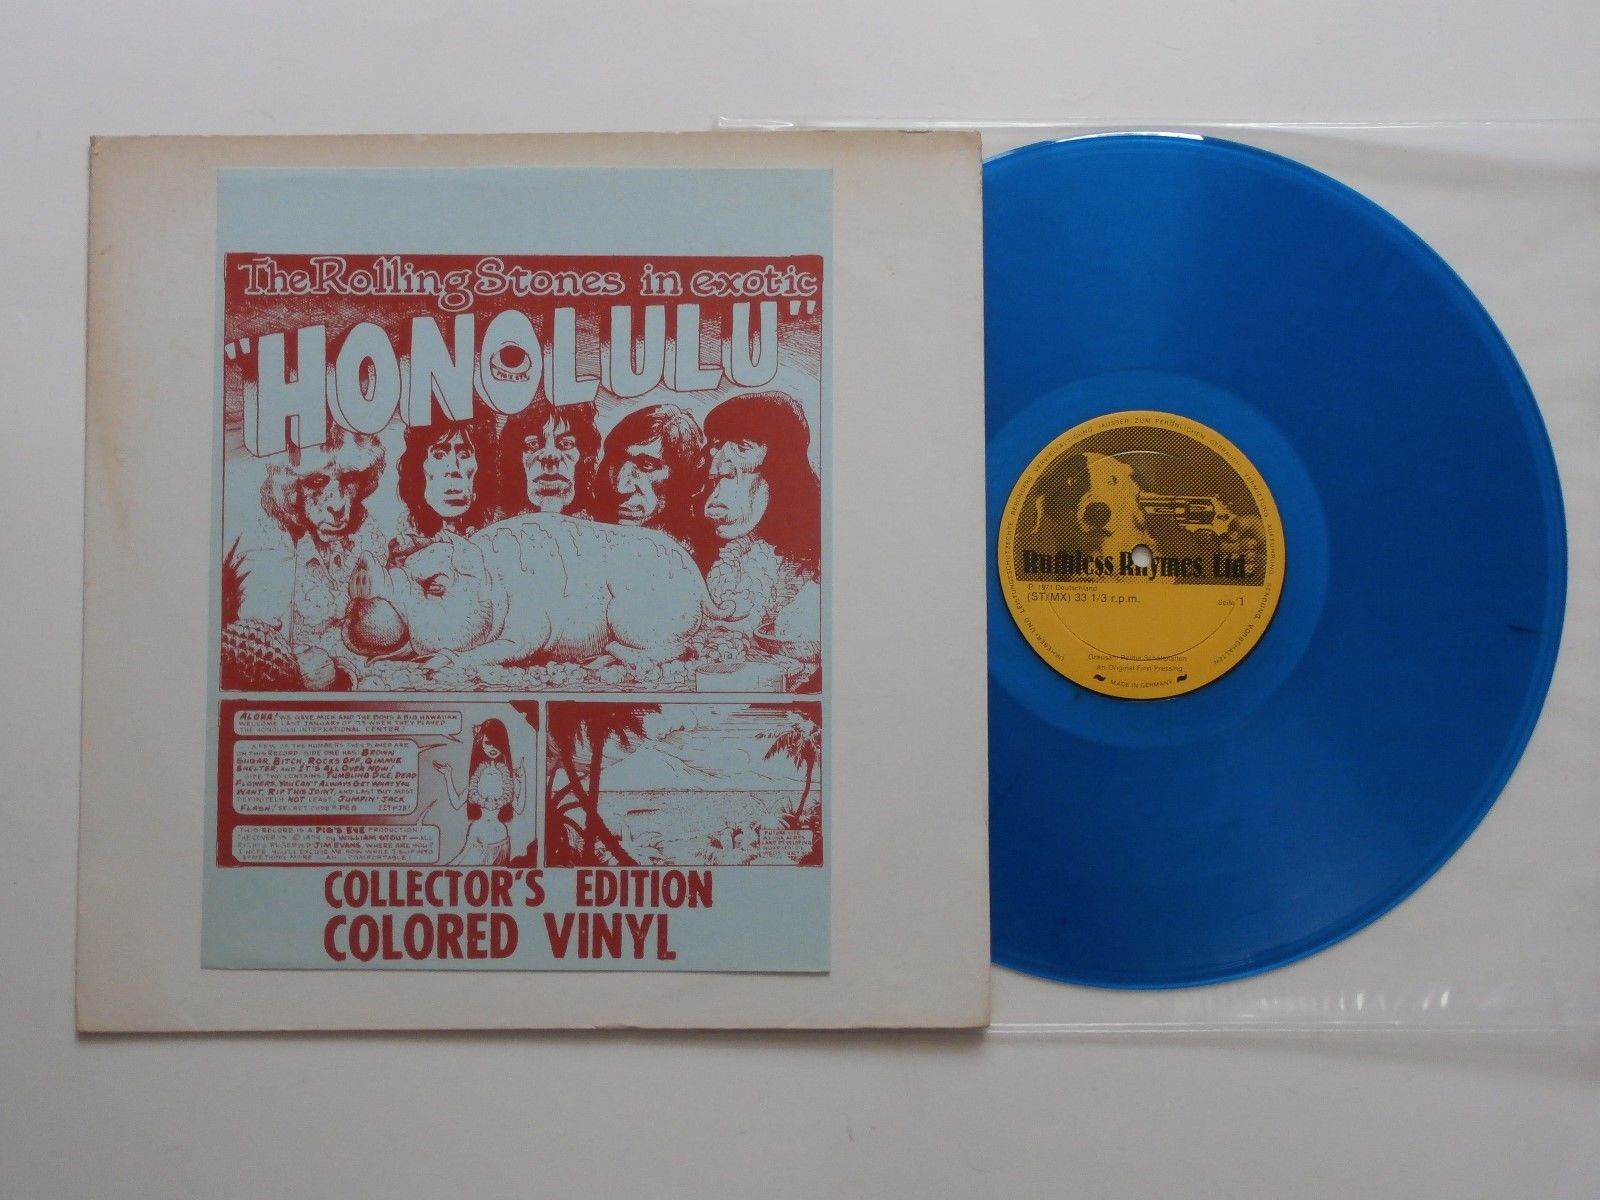 The Rolling Stones Exotic Honolulu Colored Vinyl LP VG++ / EX No TMOQ Ruthless